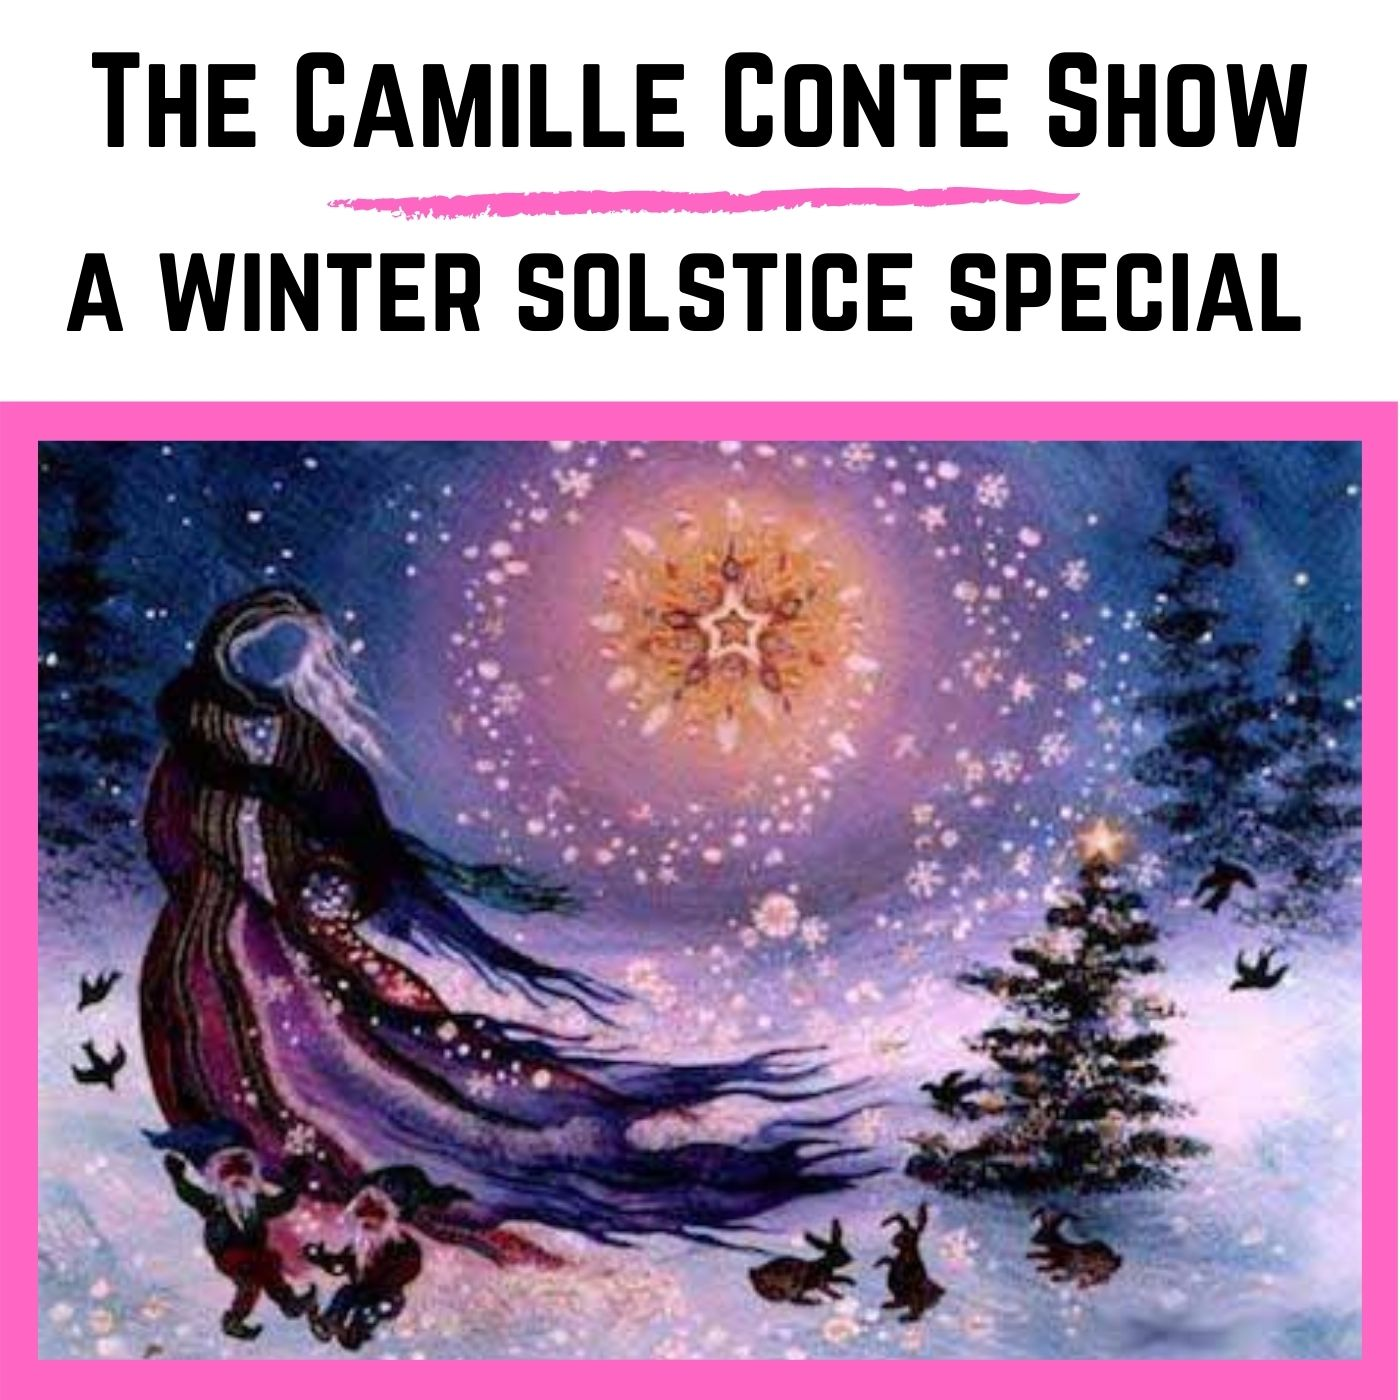 The Camille Conte Show Winter Solstice Special 2020